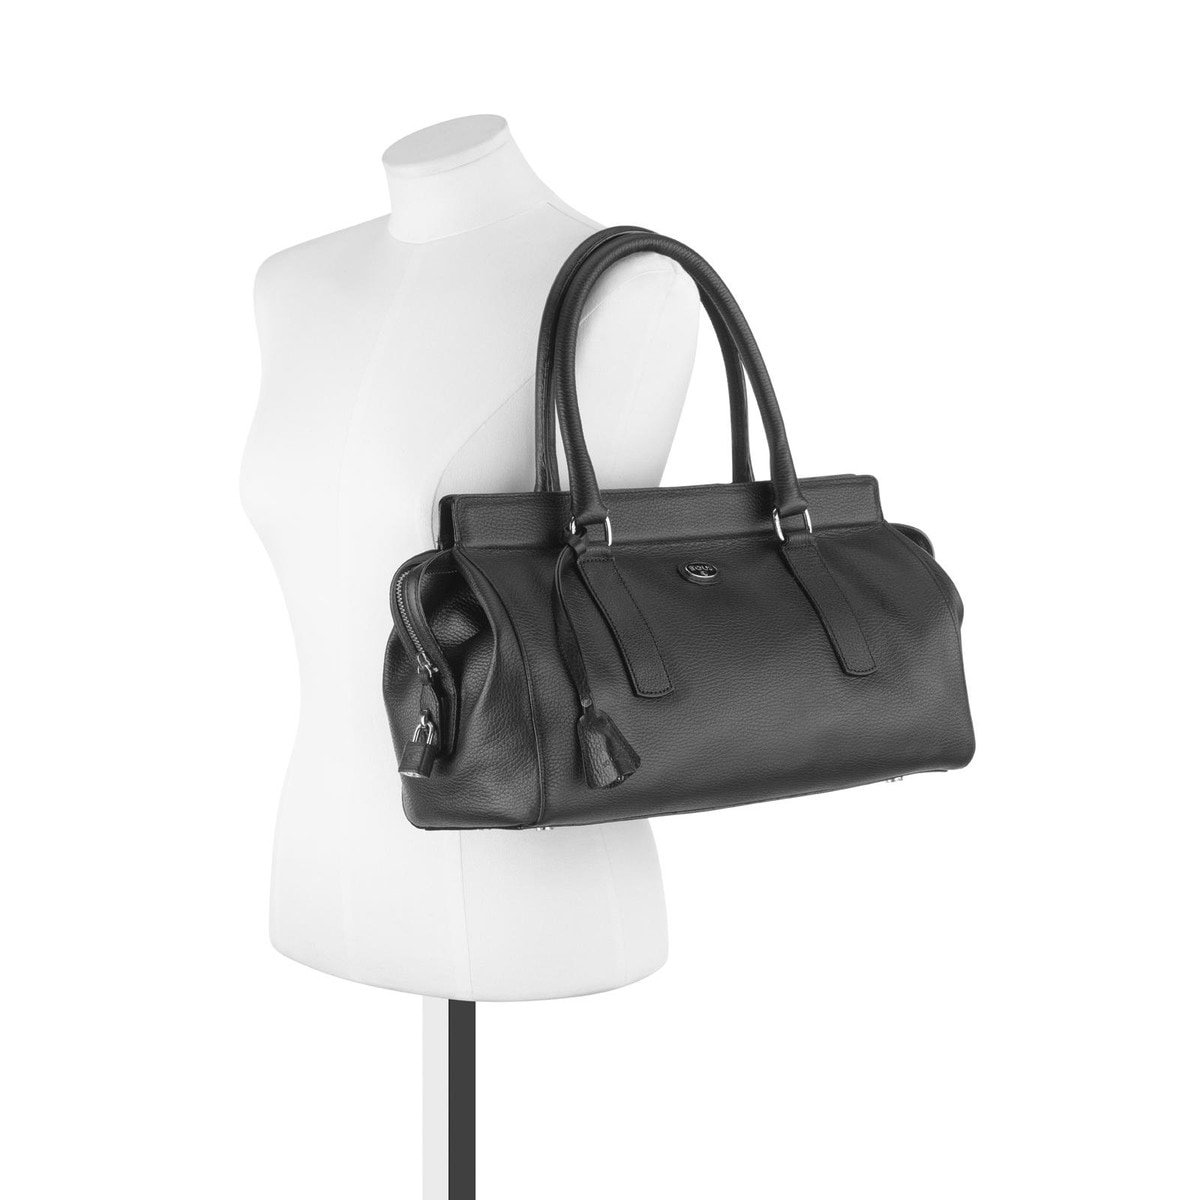 Black colored Leather Gentle City bag